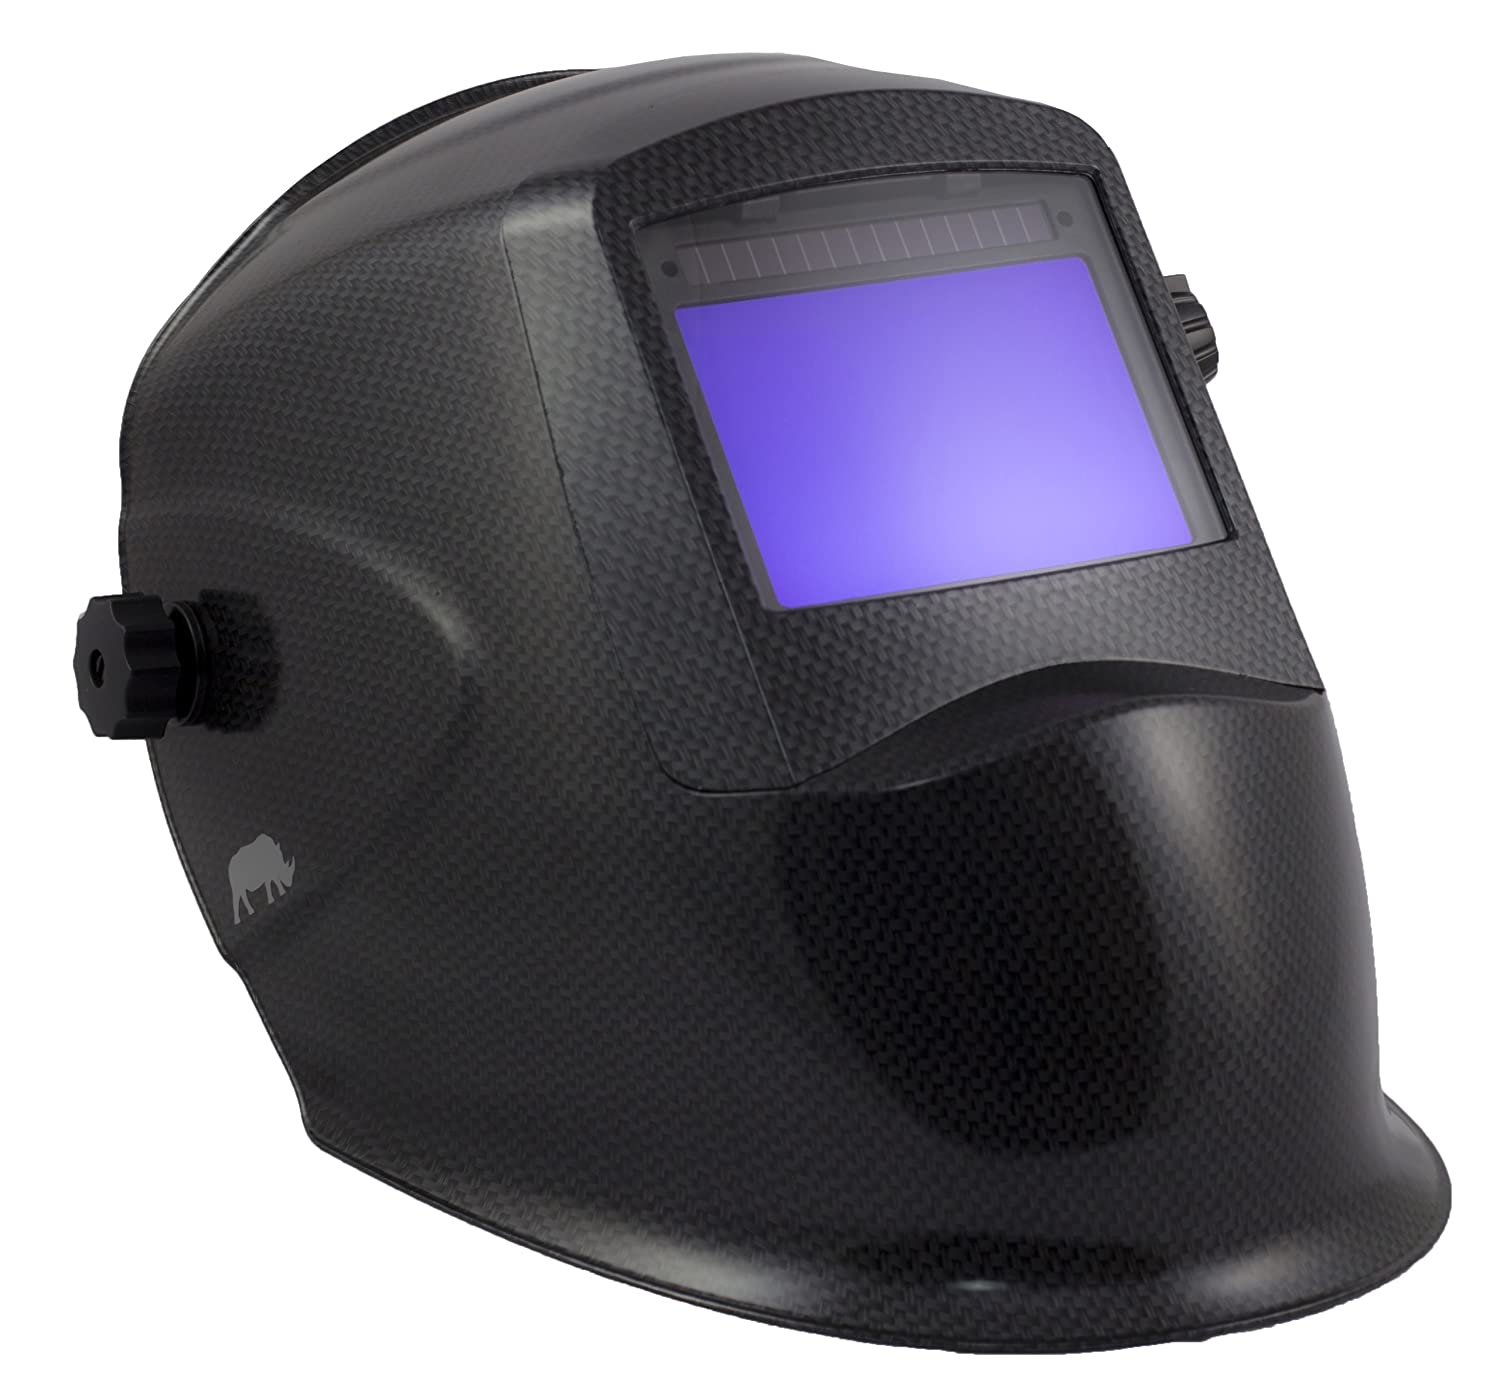 Auto darkening welding helmet review uk dating 8